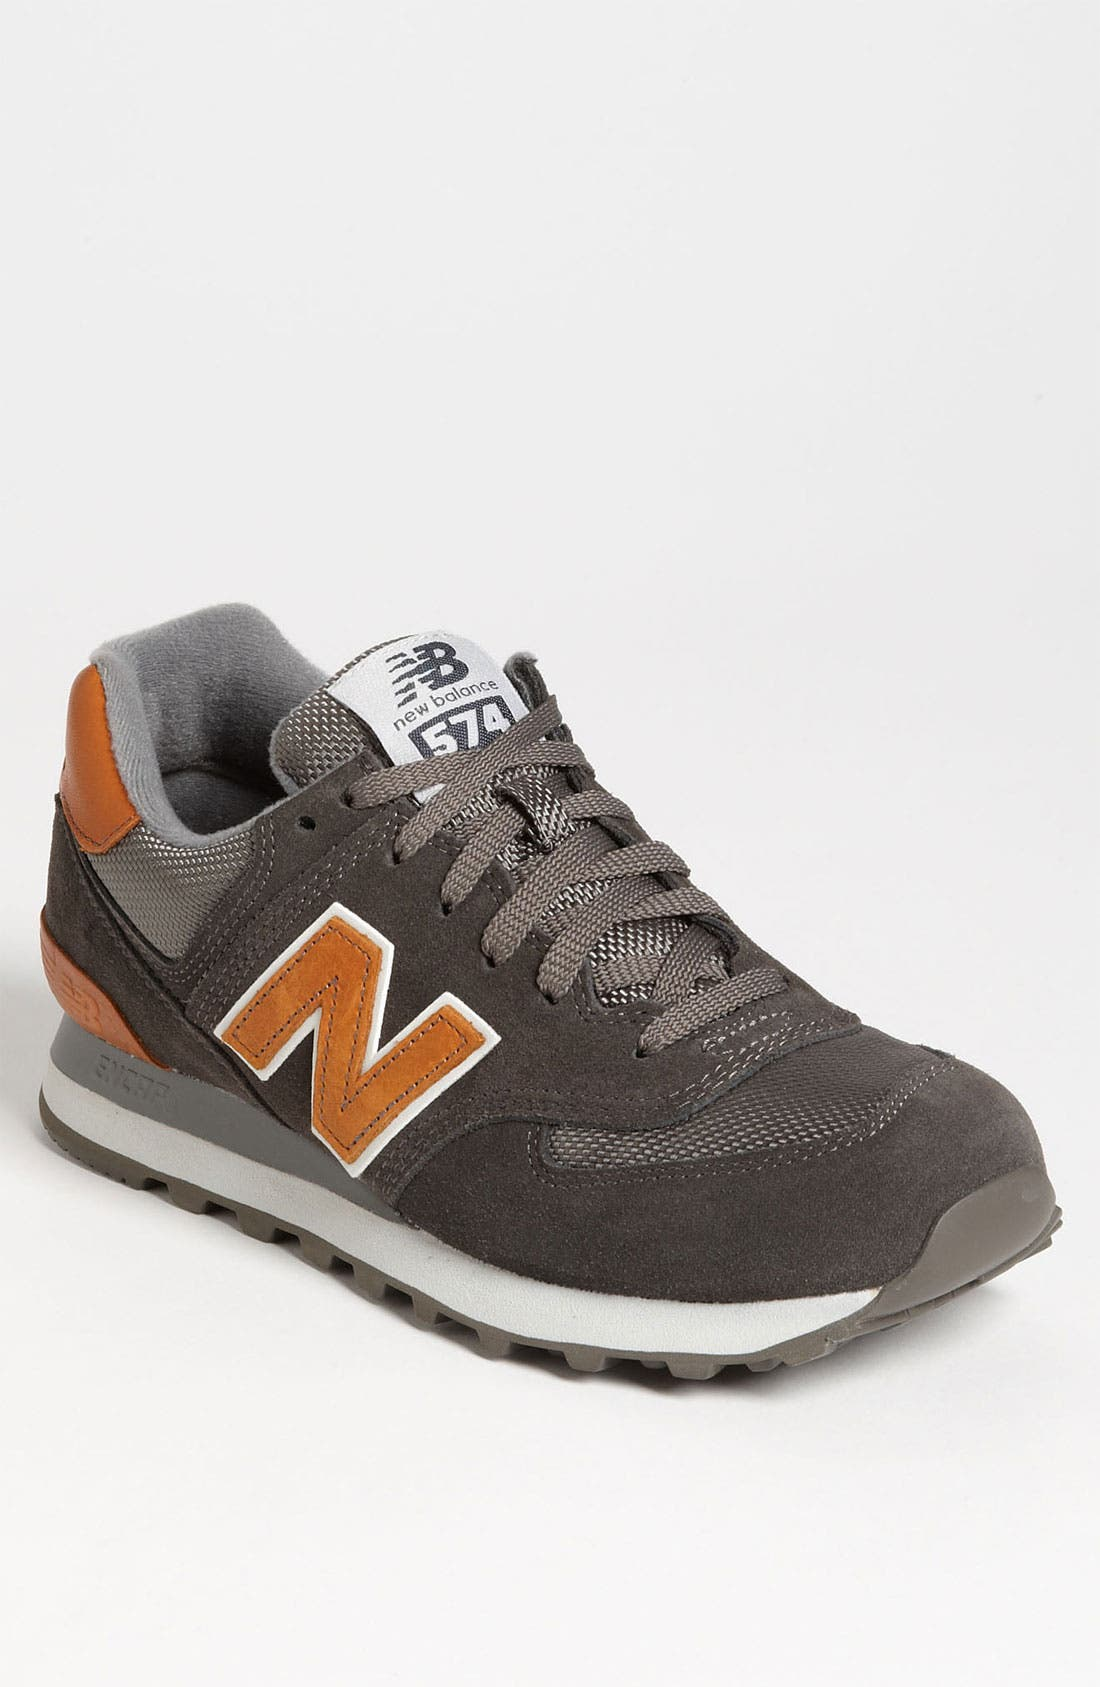 Alternate Image 1 Selected - New Balance '574' Sneaker (Men)